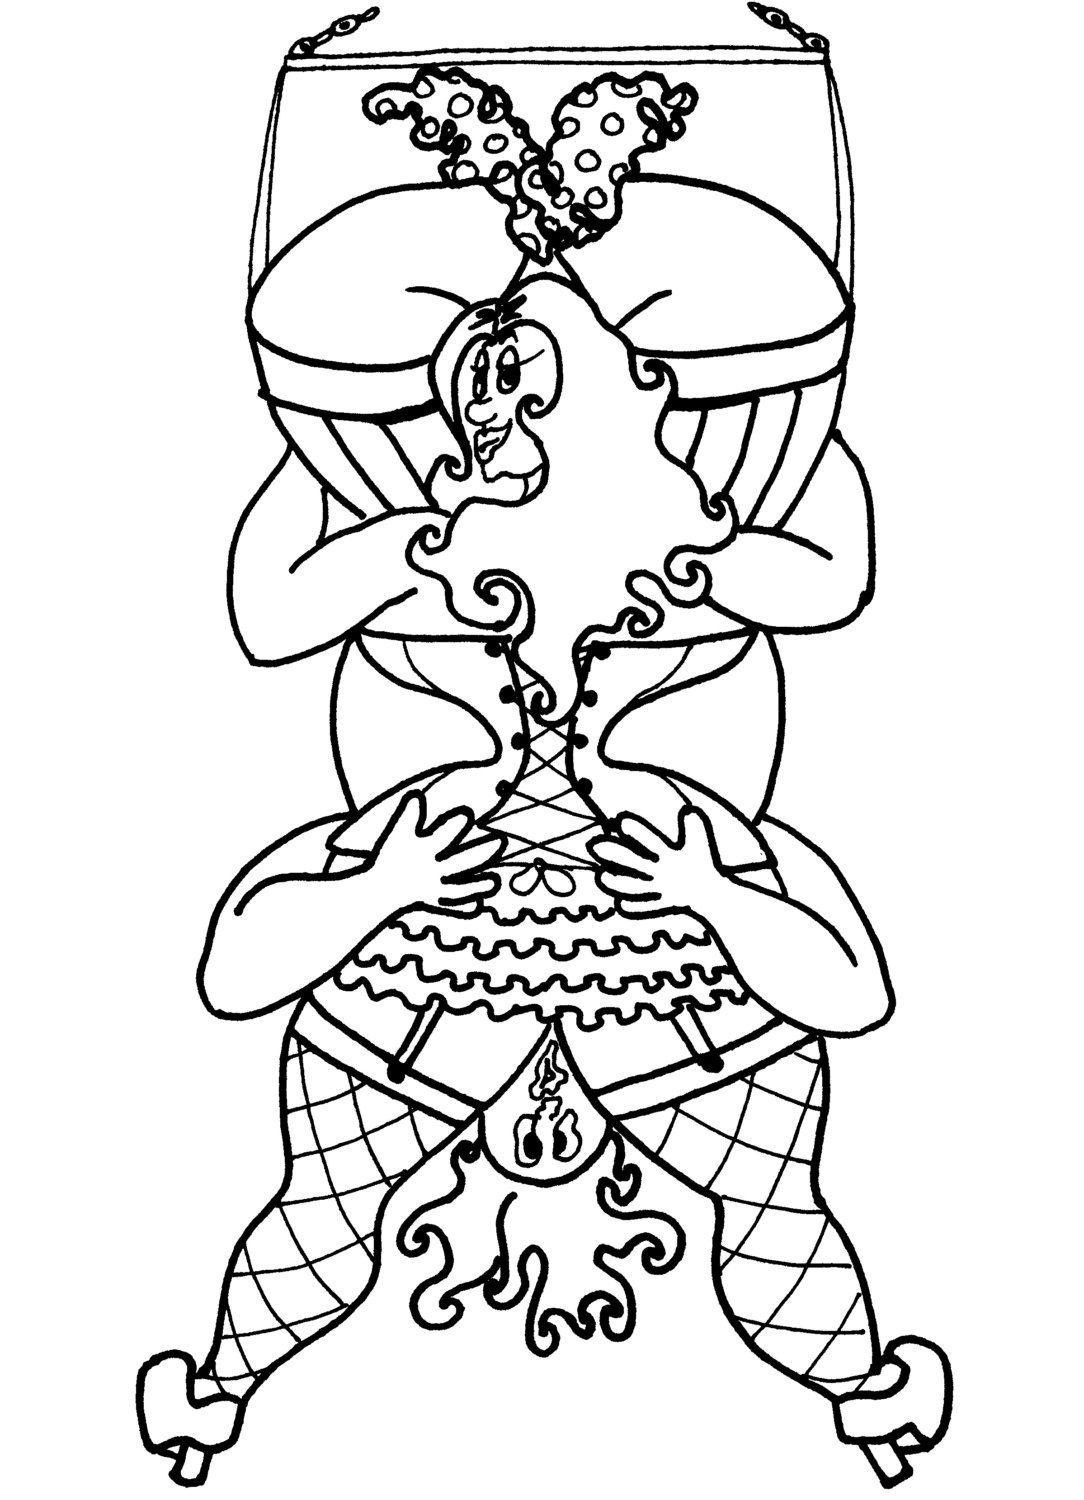 Swinging 69 Sexy Coloring Pages for Adults from the Chubby Art